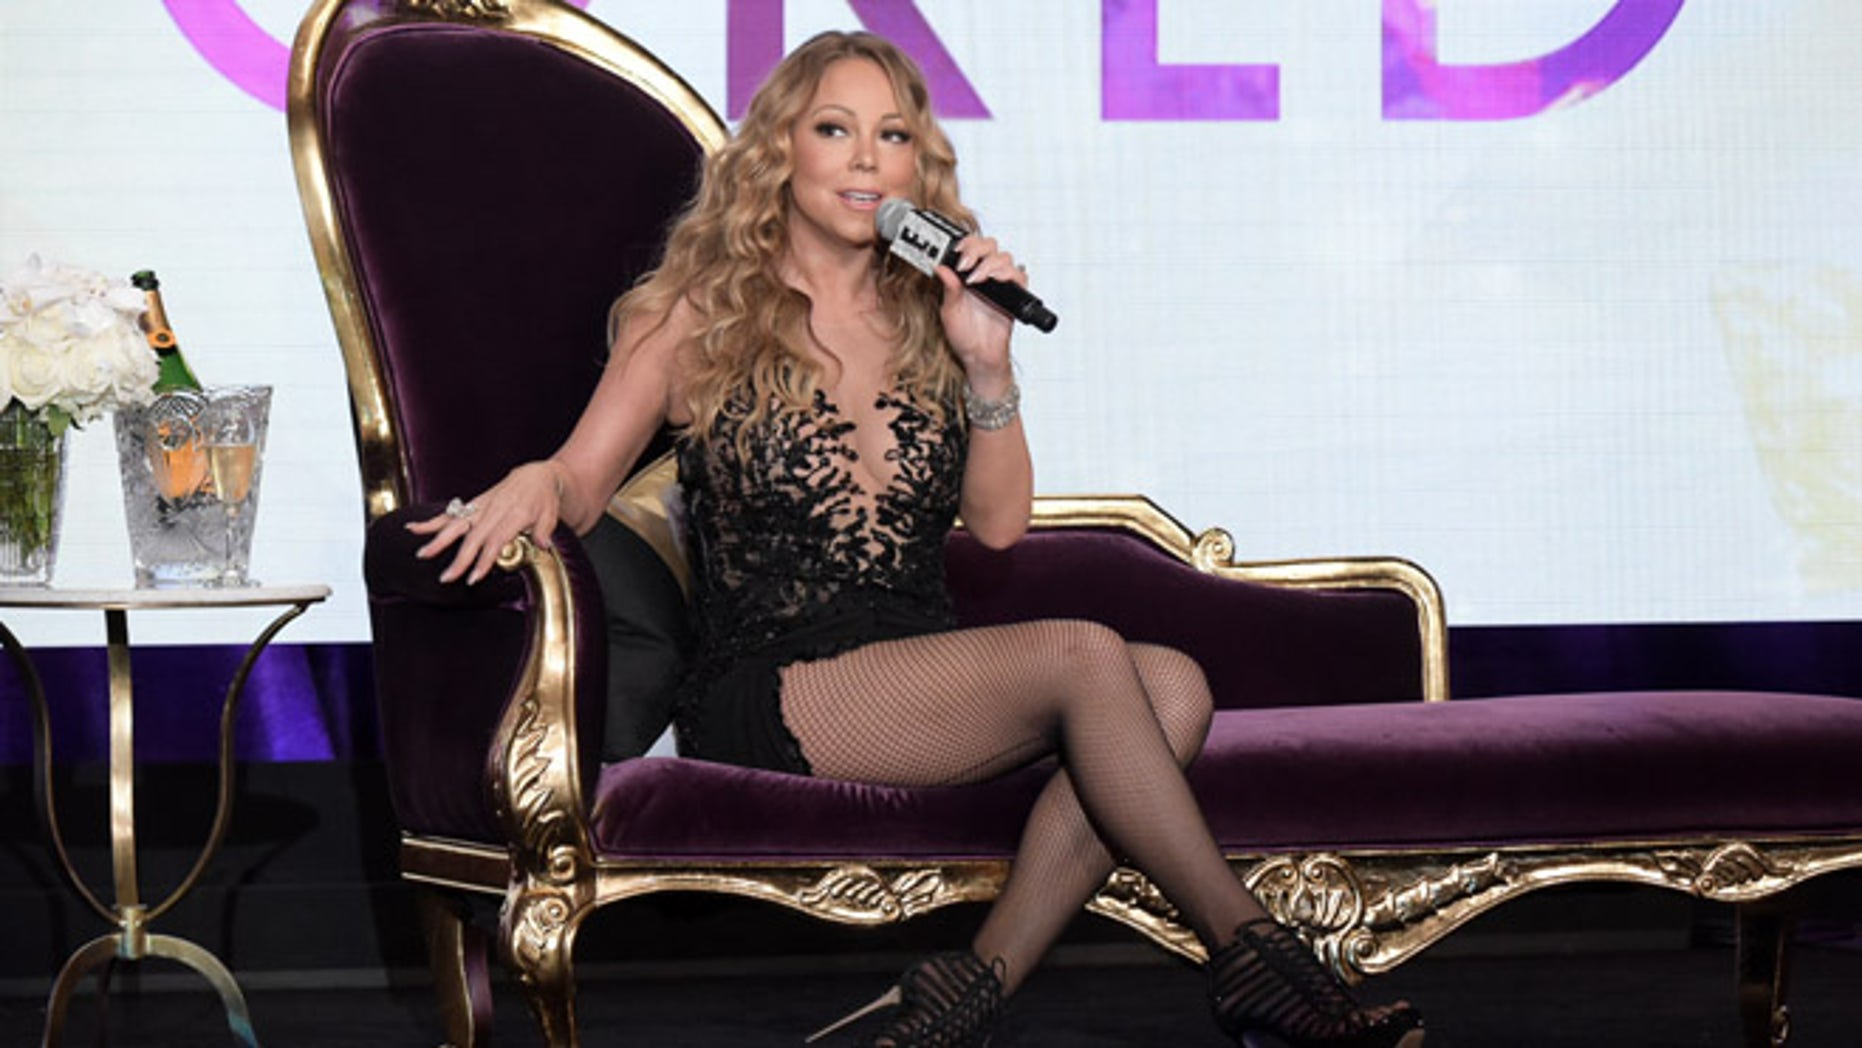 Mariah Carey during the NBC Television Critics Association summer press tour on Aug. 3, 2016, in Beverly Hills, Calif.